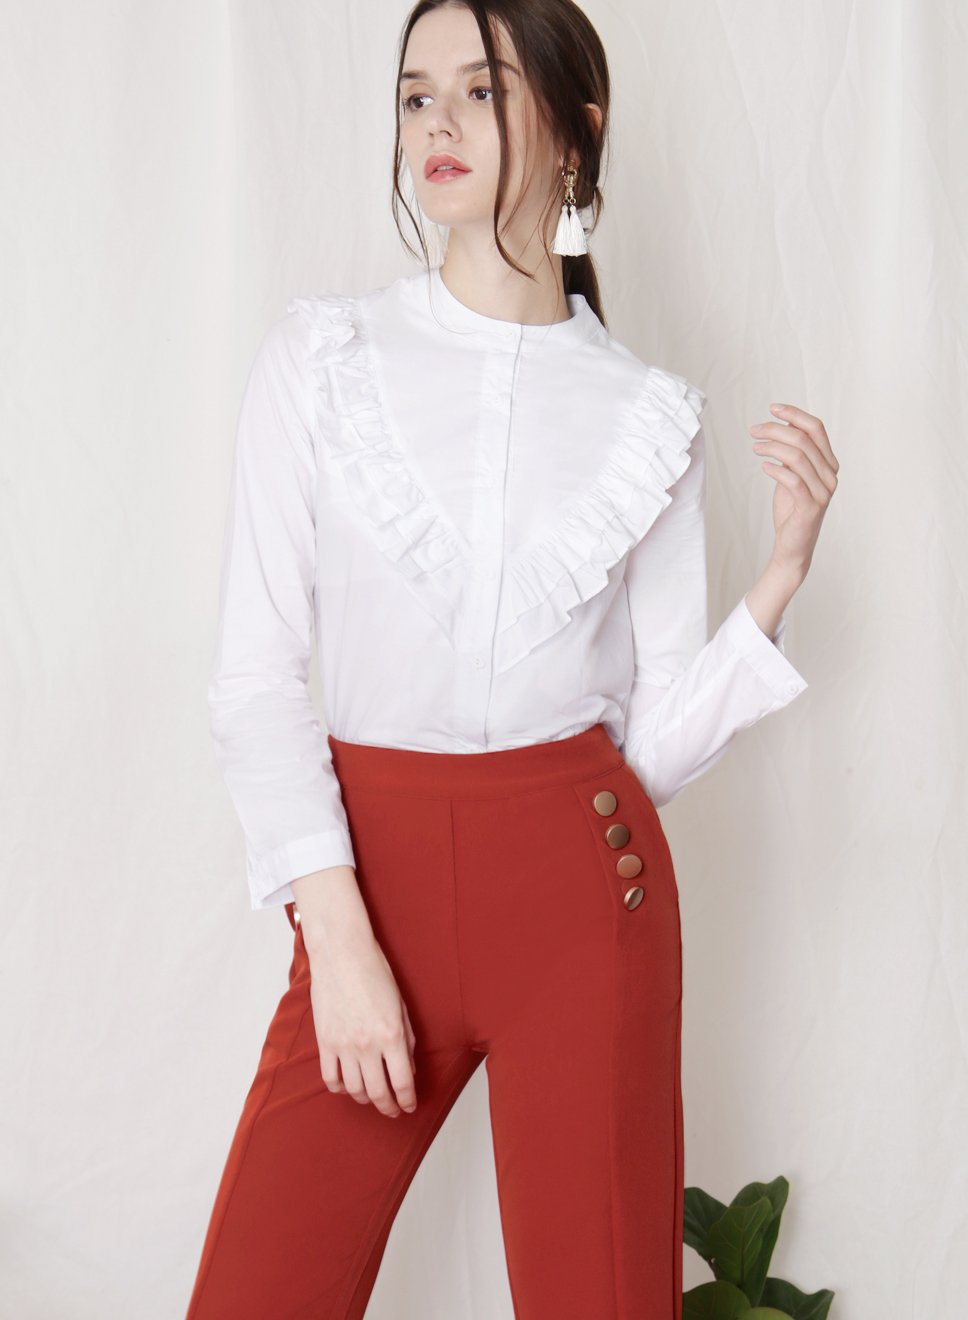 ALOFT Ruffled Button Down Shirt (White) at $ 34.50 only sold at And Well Dressed Online Fashion Store Singapore